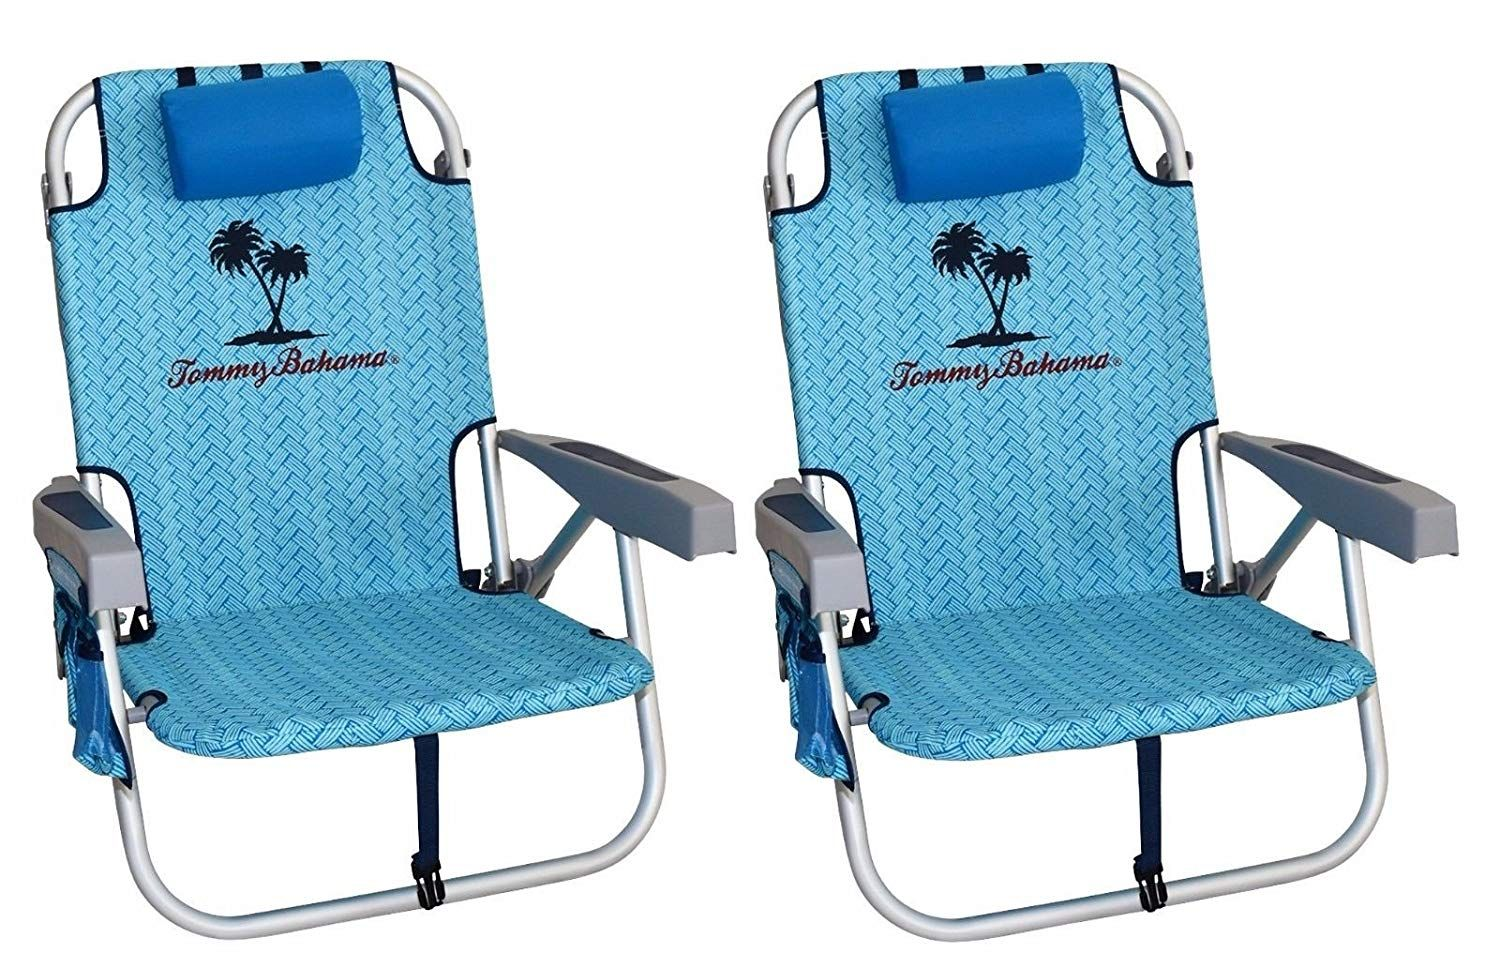 Tommy Bahama Chair Cooler Backpack Lift Chairs Dayton Ohio 2 2016 With Storage Pouch And Towel Bar See The Photo Link Even More Details This Is An Affiliate